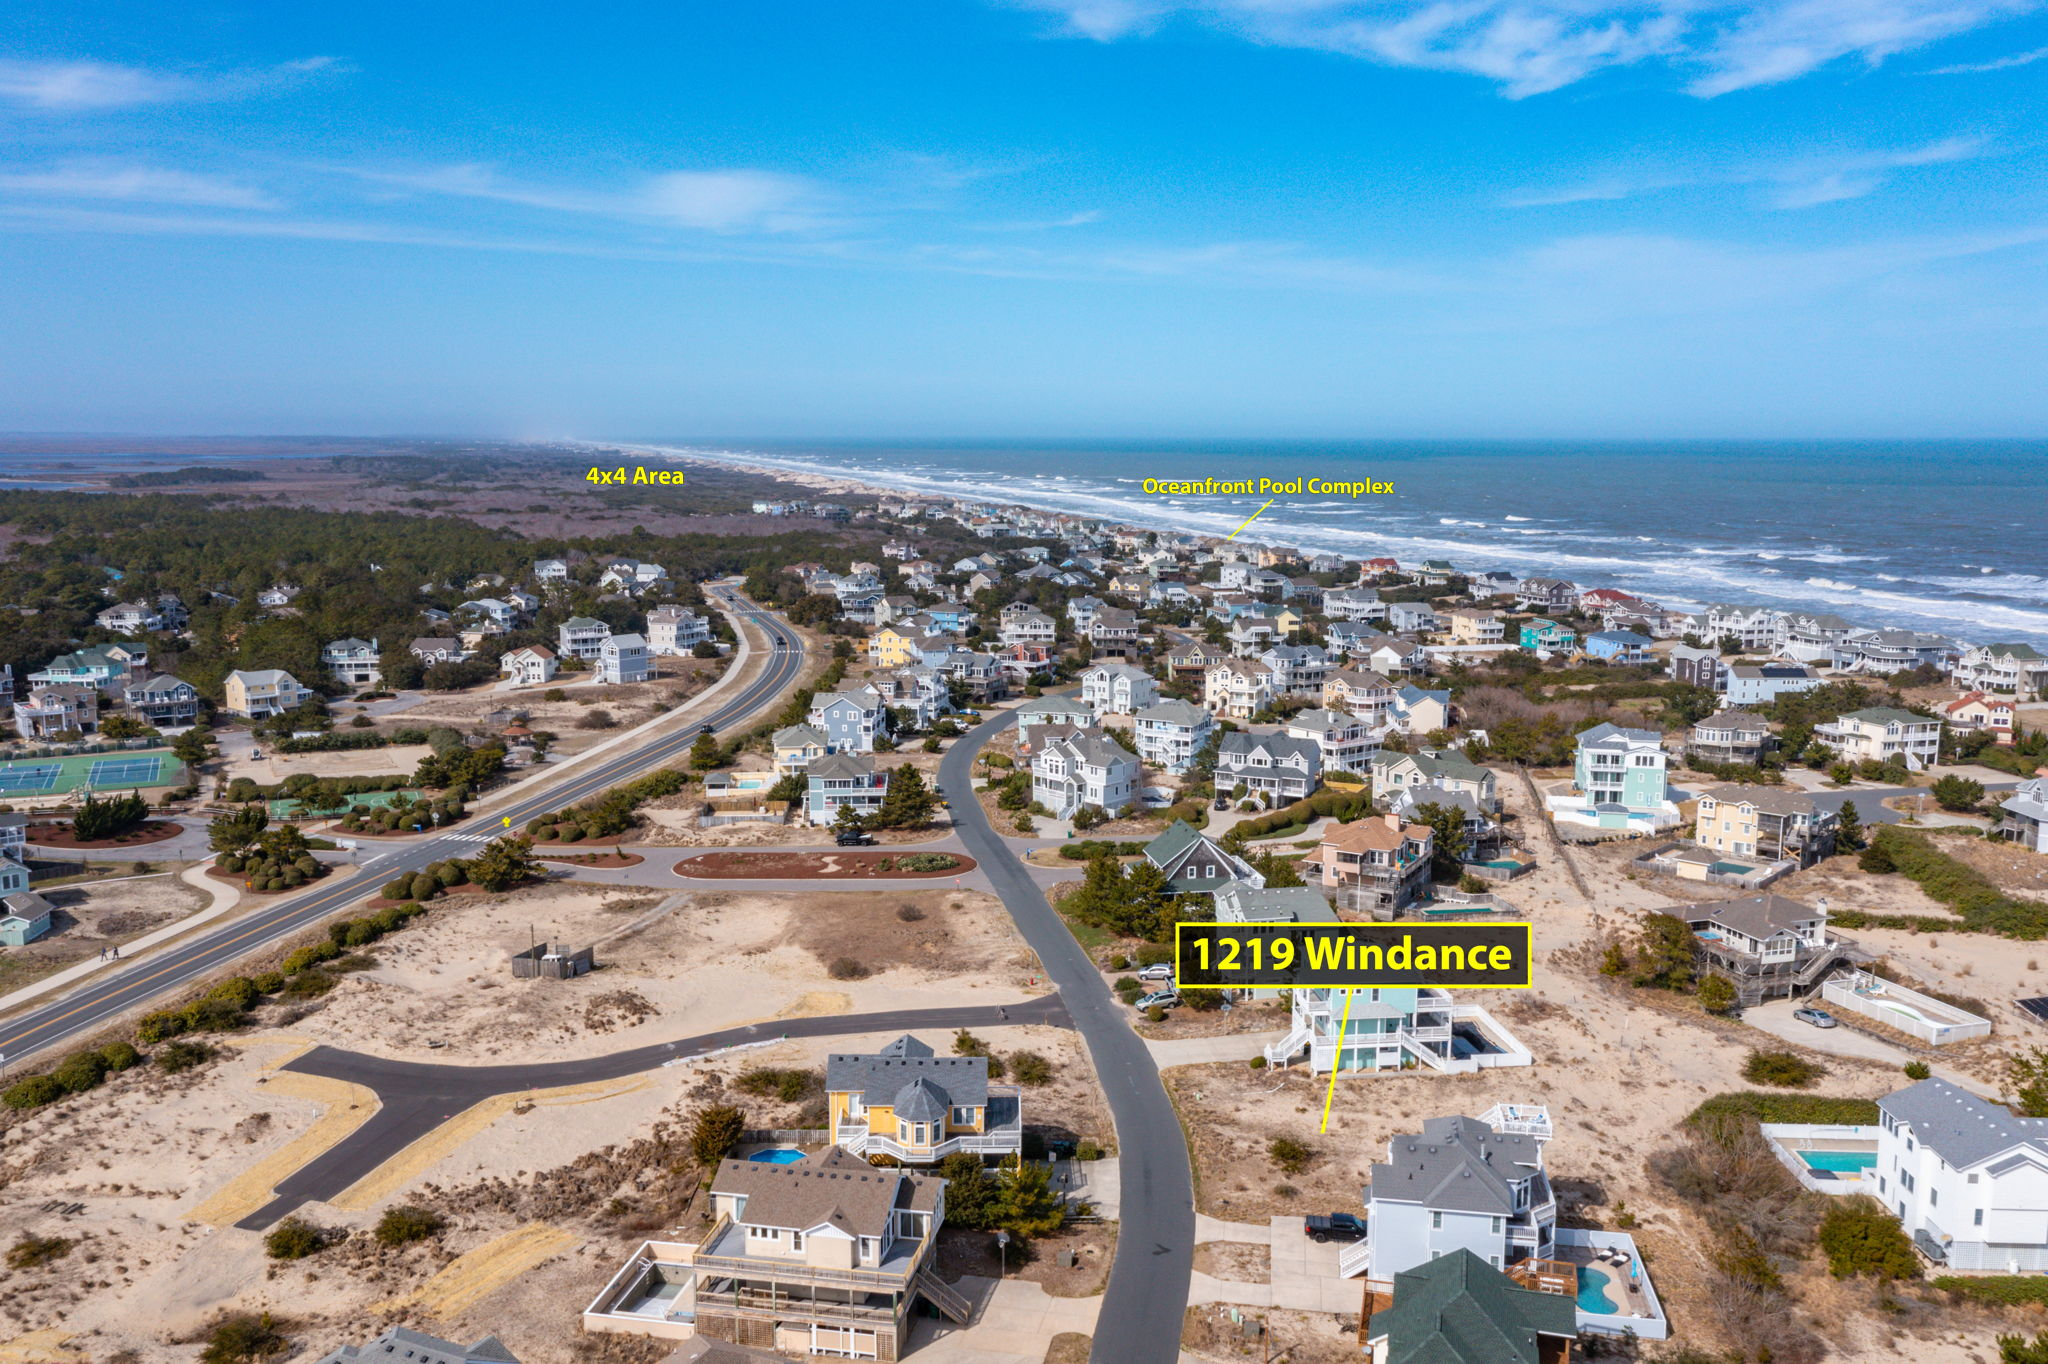 1219 Windance | Aerial 07 - Labeled